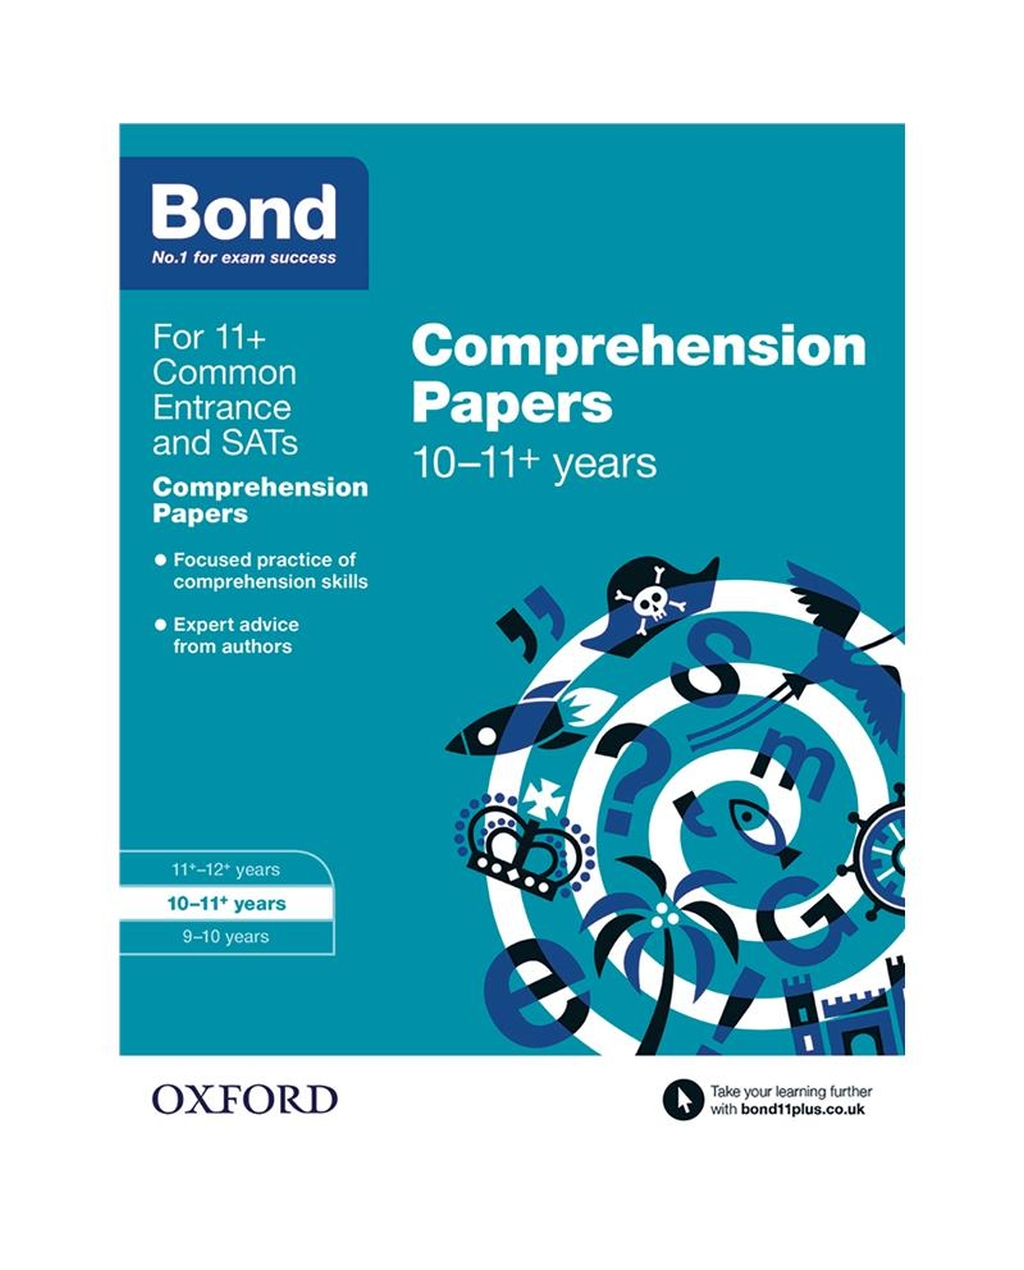 Bond Comprehension Papers 10-11+years